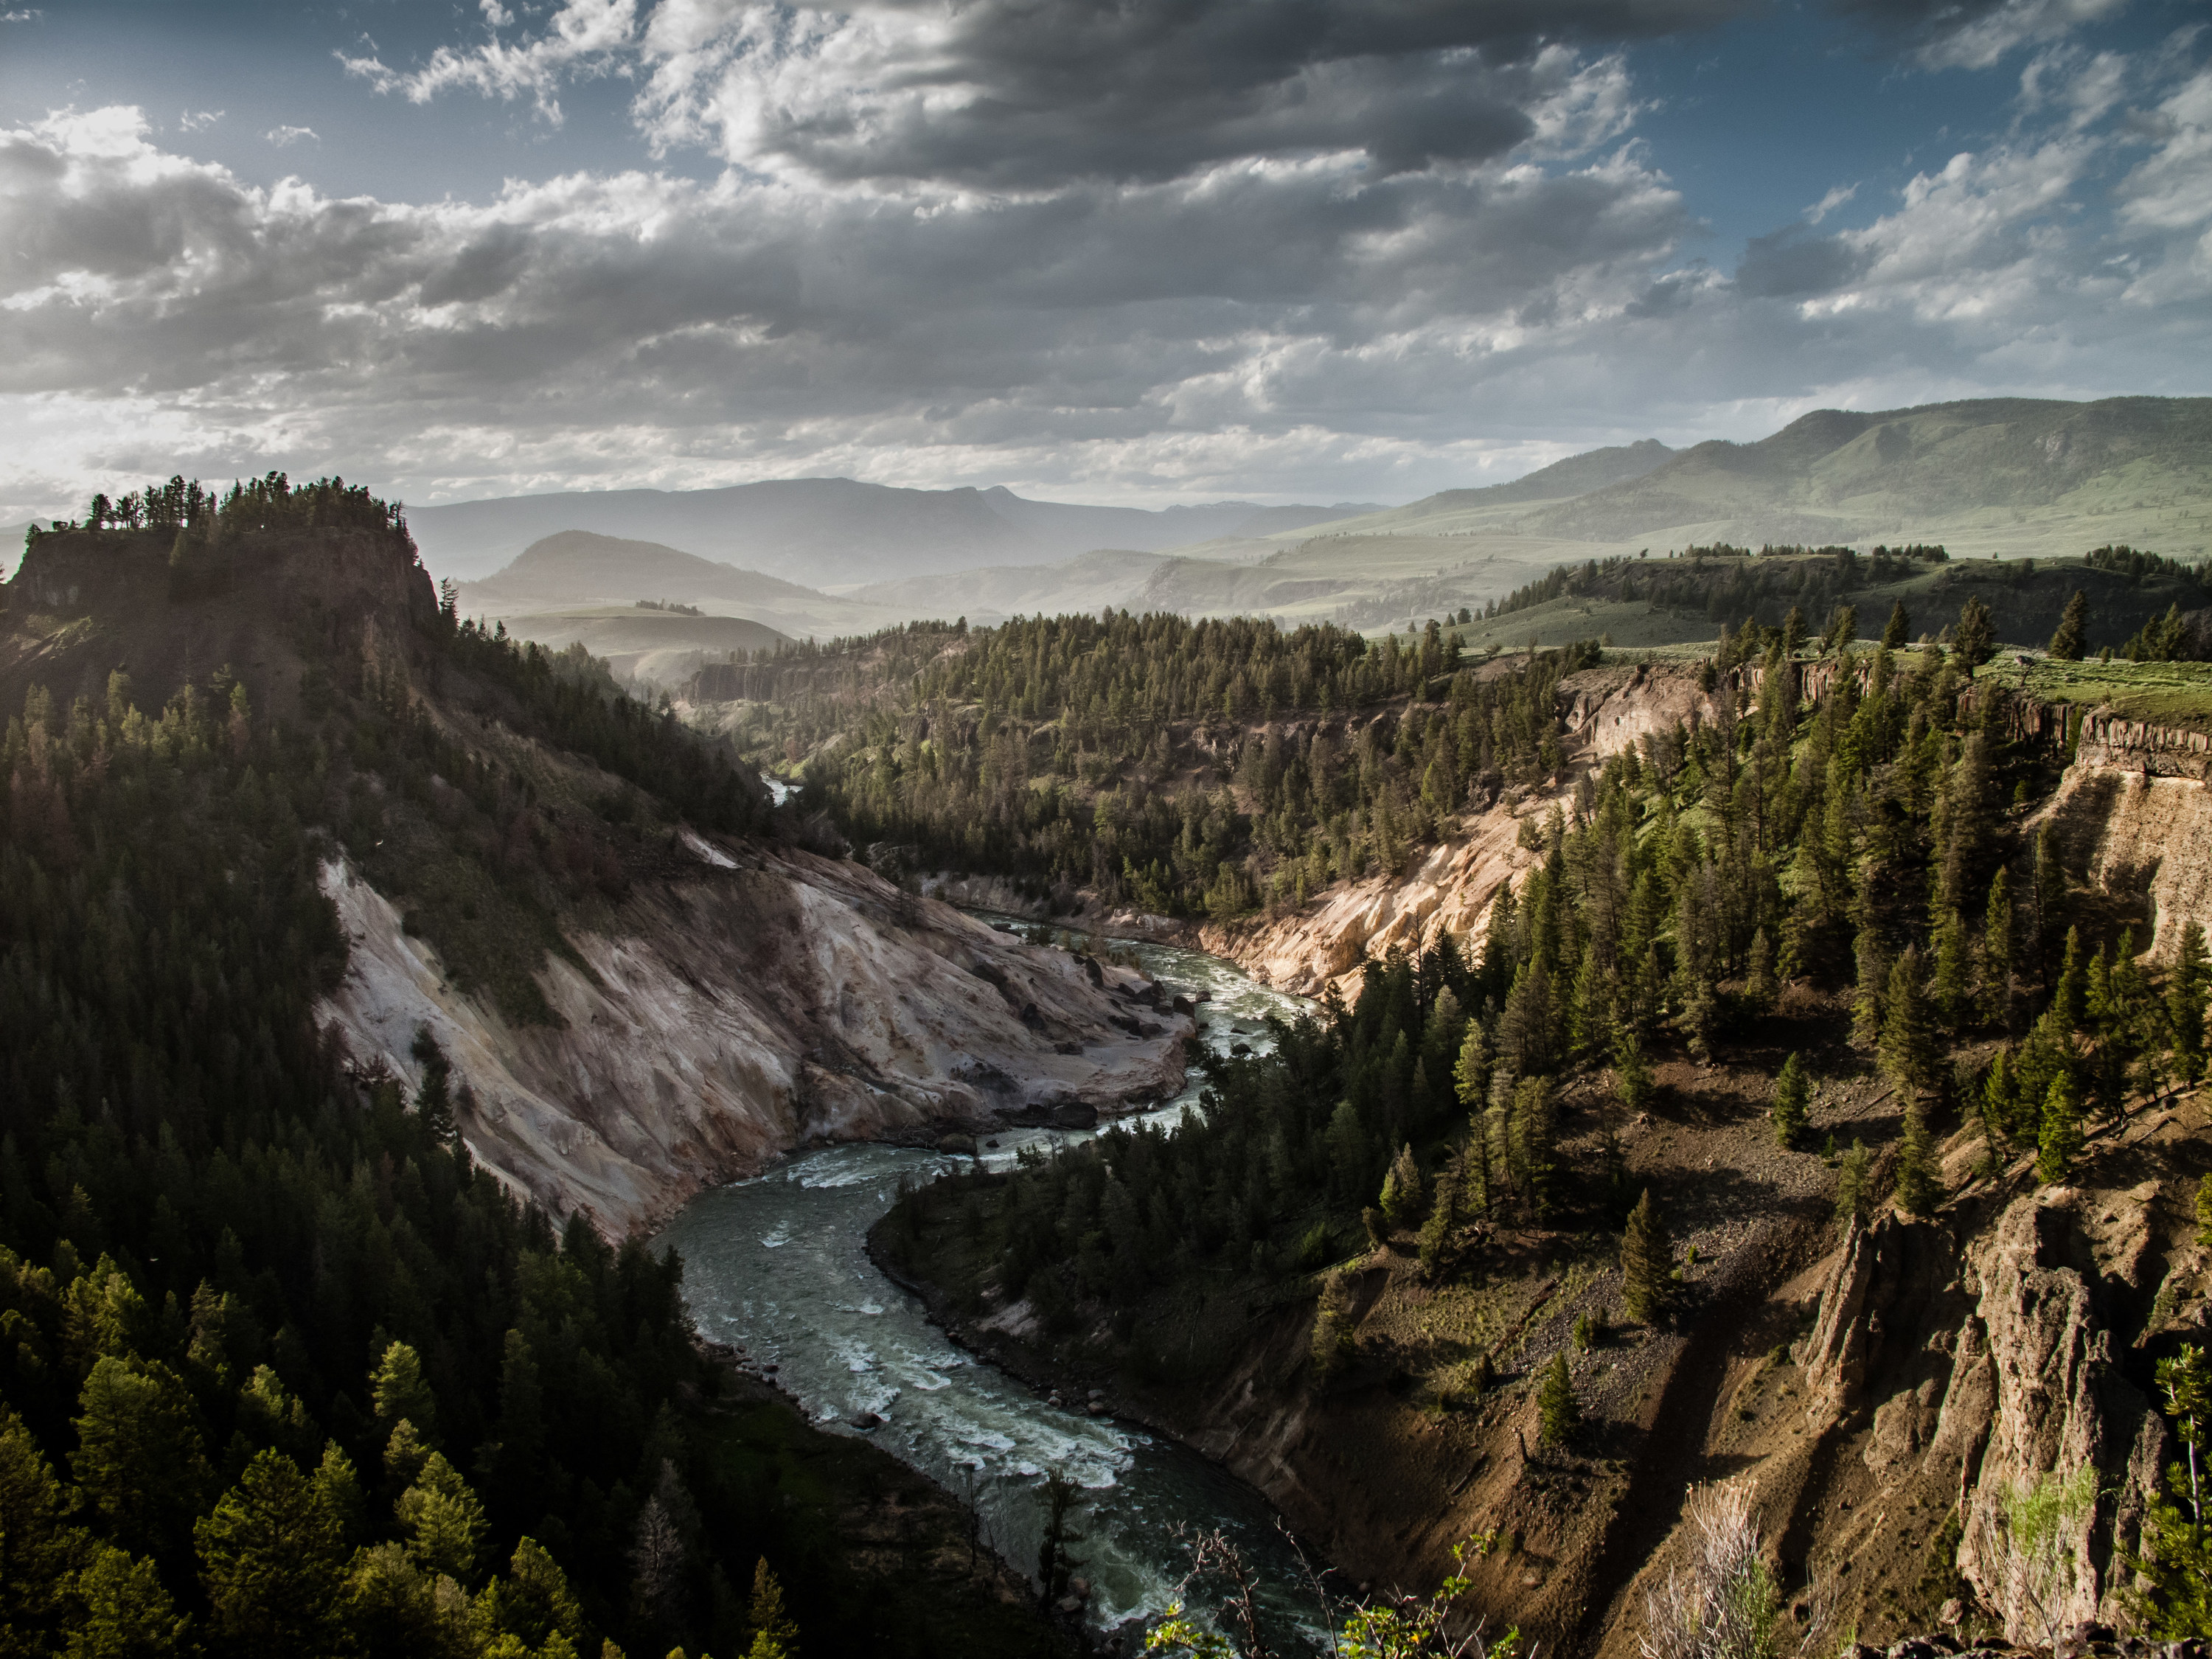 A river courses through the jagged canyon of Yellowstone National Park while clouds loom above.